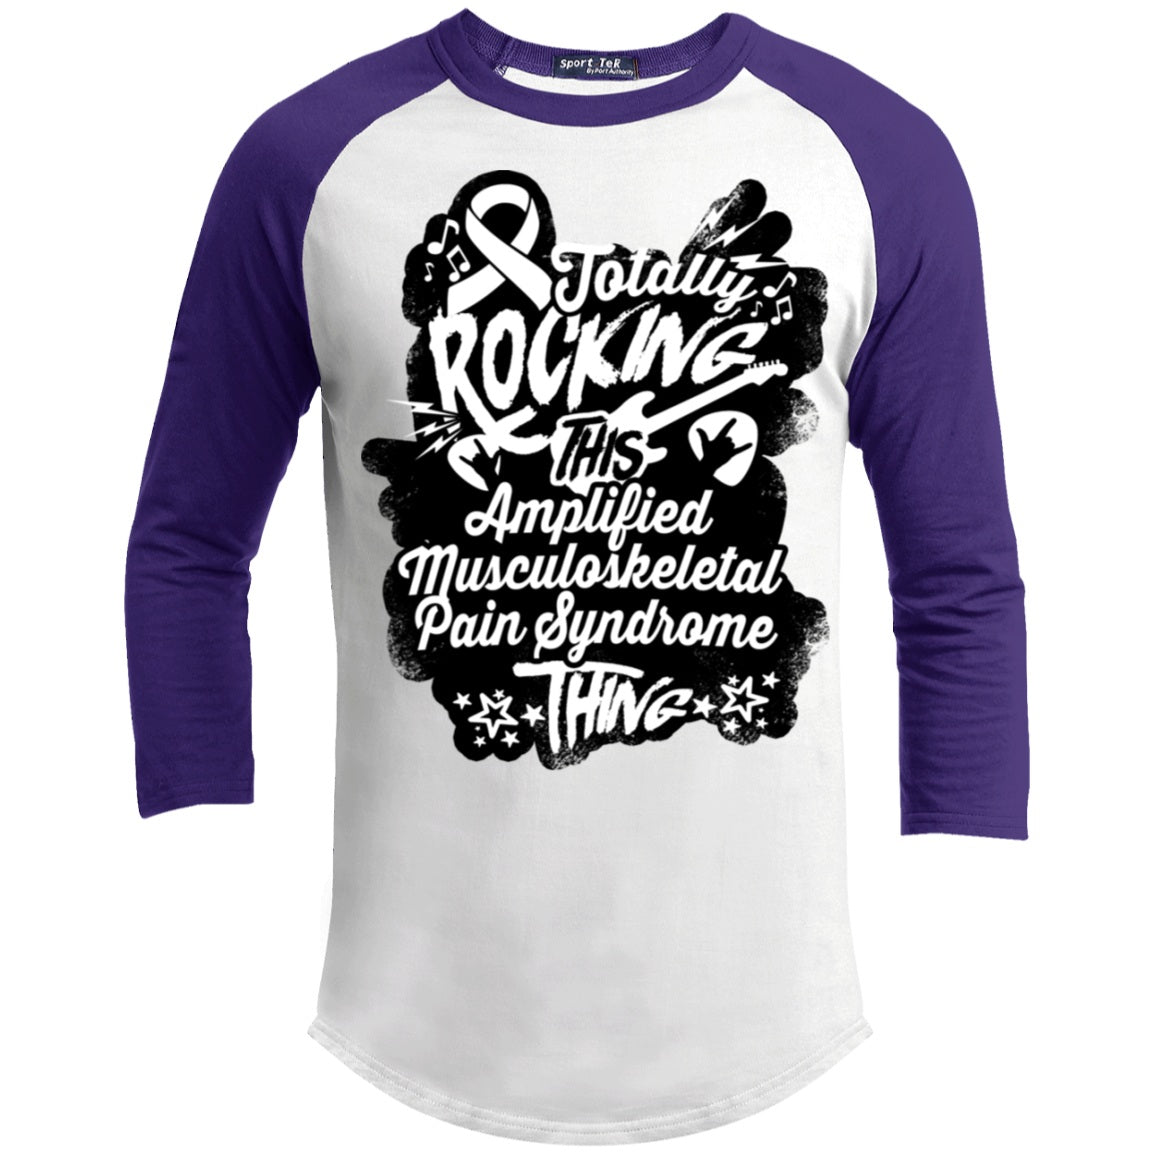 Rocking Amplified Musculoskeletal Pain Syndrome Baseball Shirt